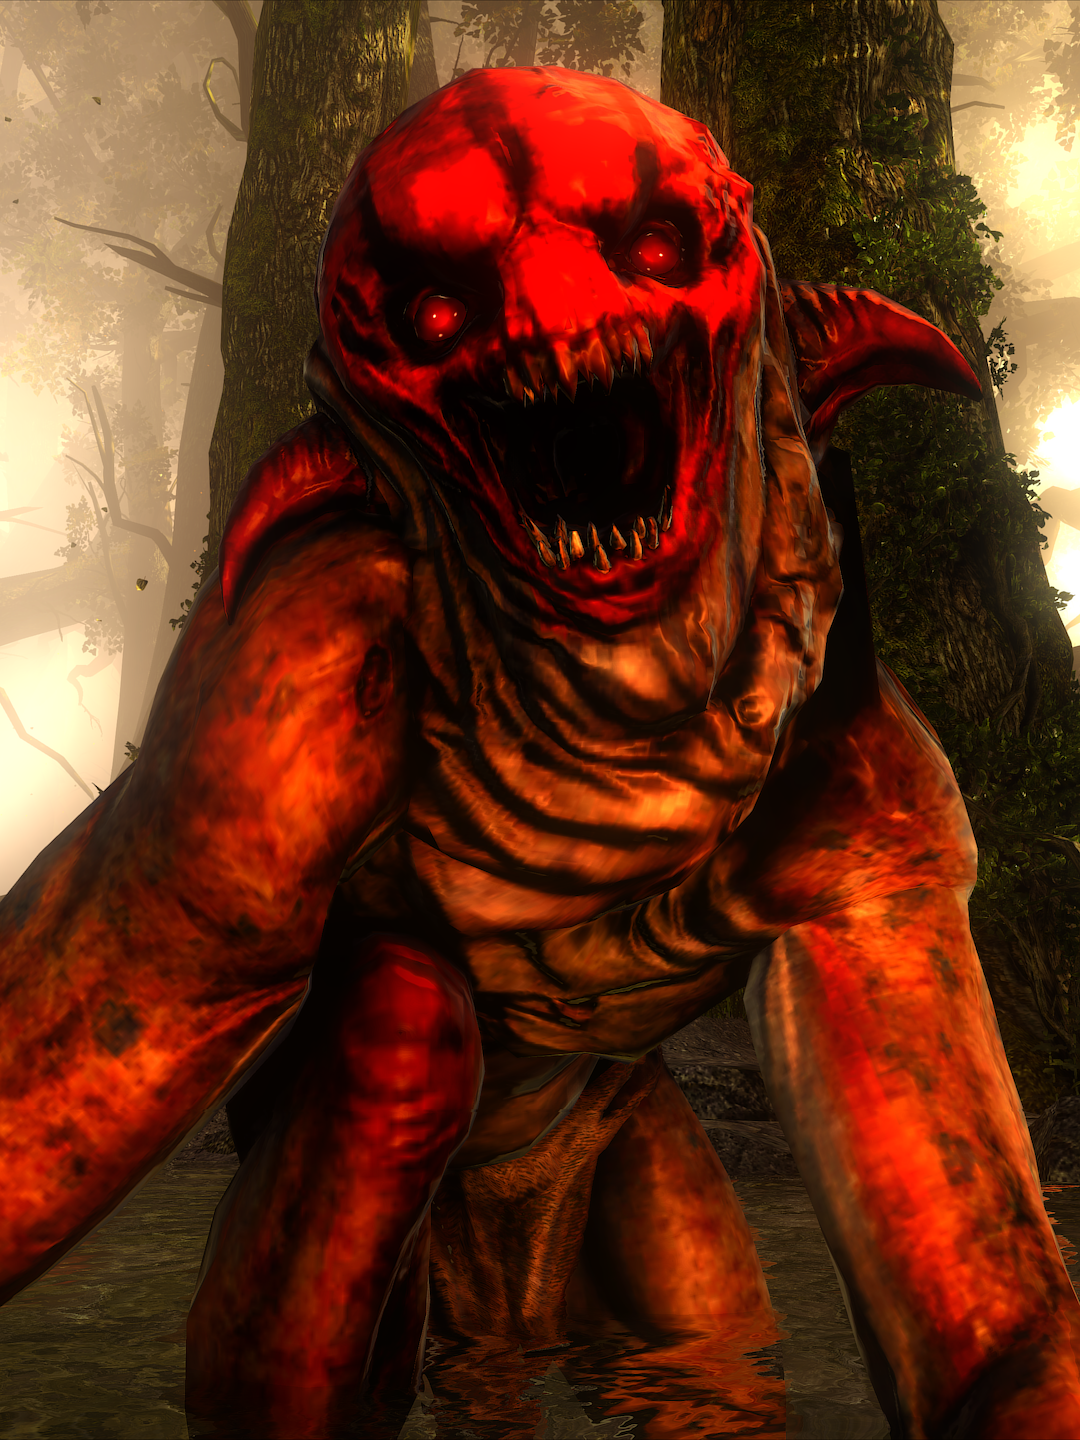 redmenace.png - Witcher 2: Assassins of Kings, the